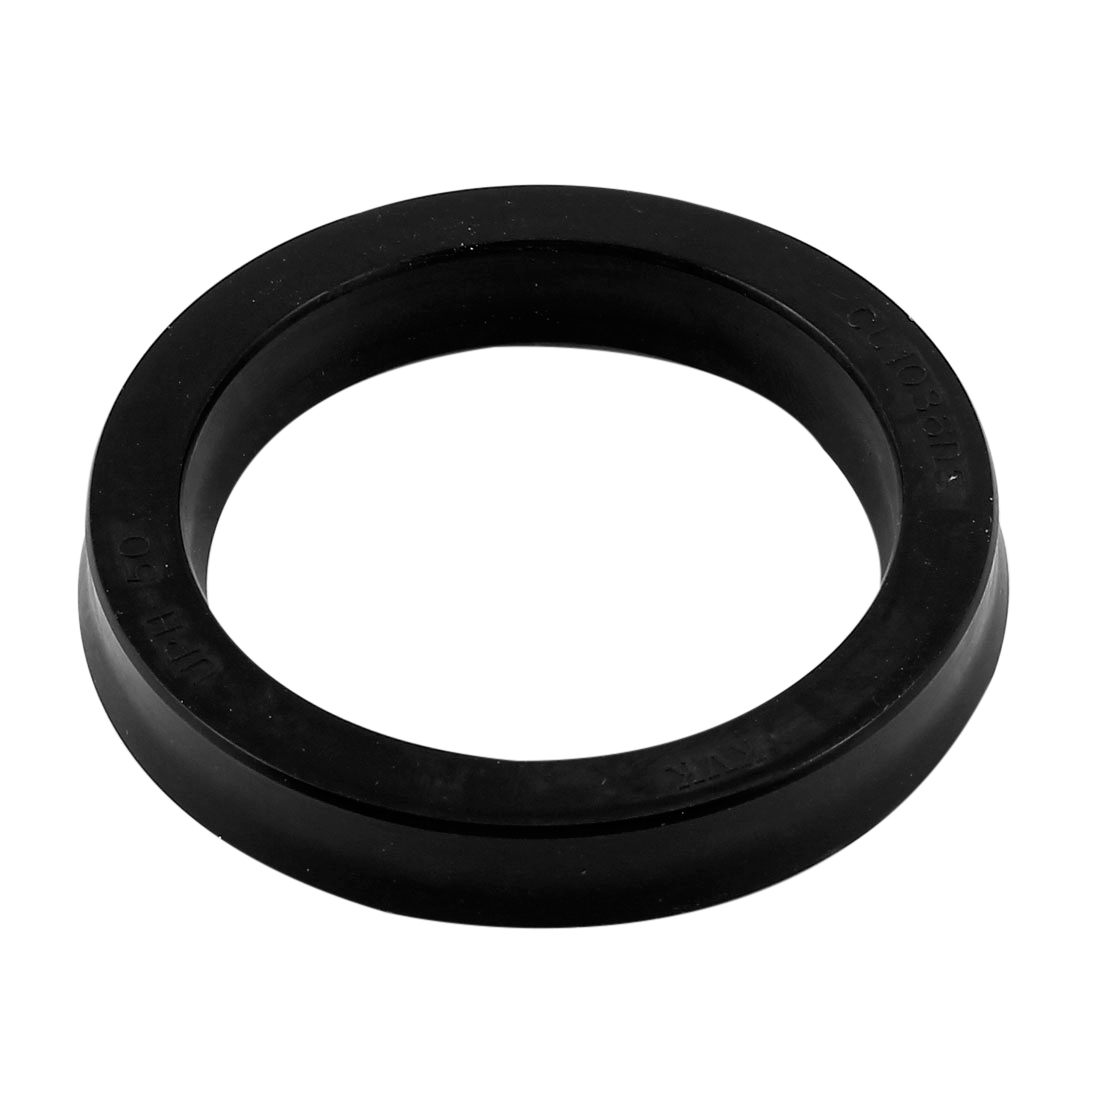 Mechanical Rotary Shaft Rubber Oil Seal Ring Black 66mm x 50mm x 9mm